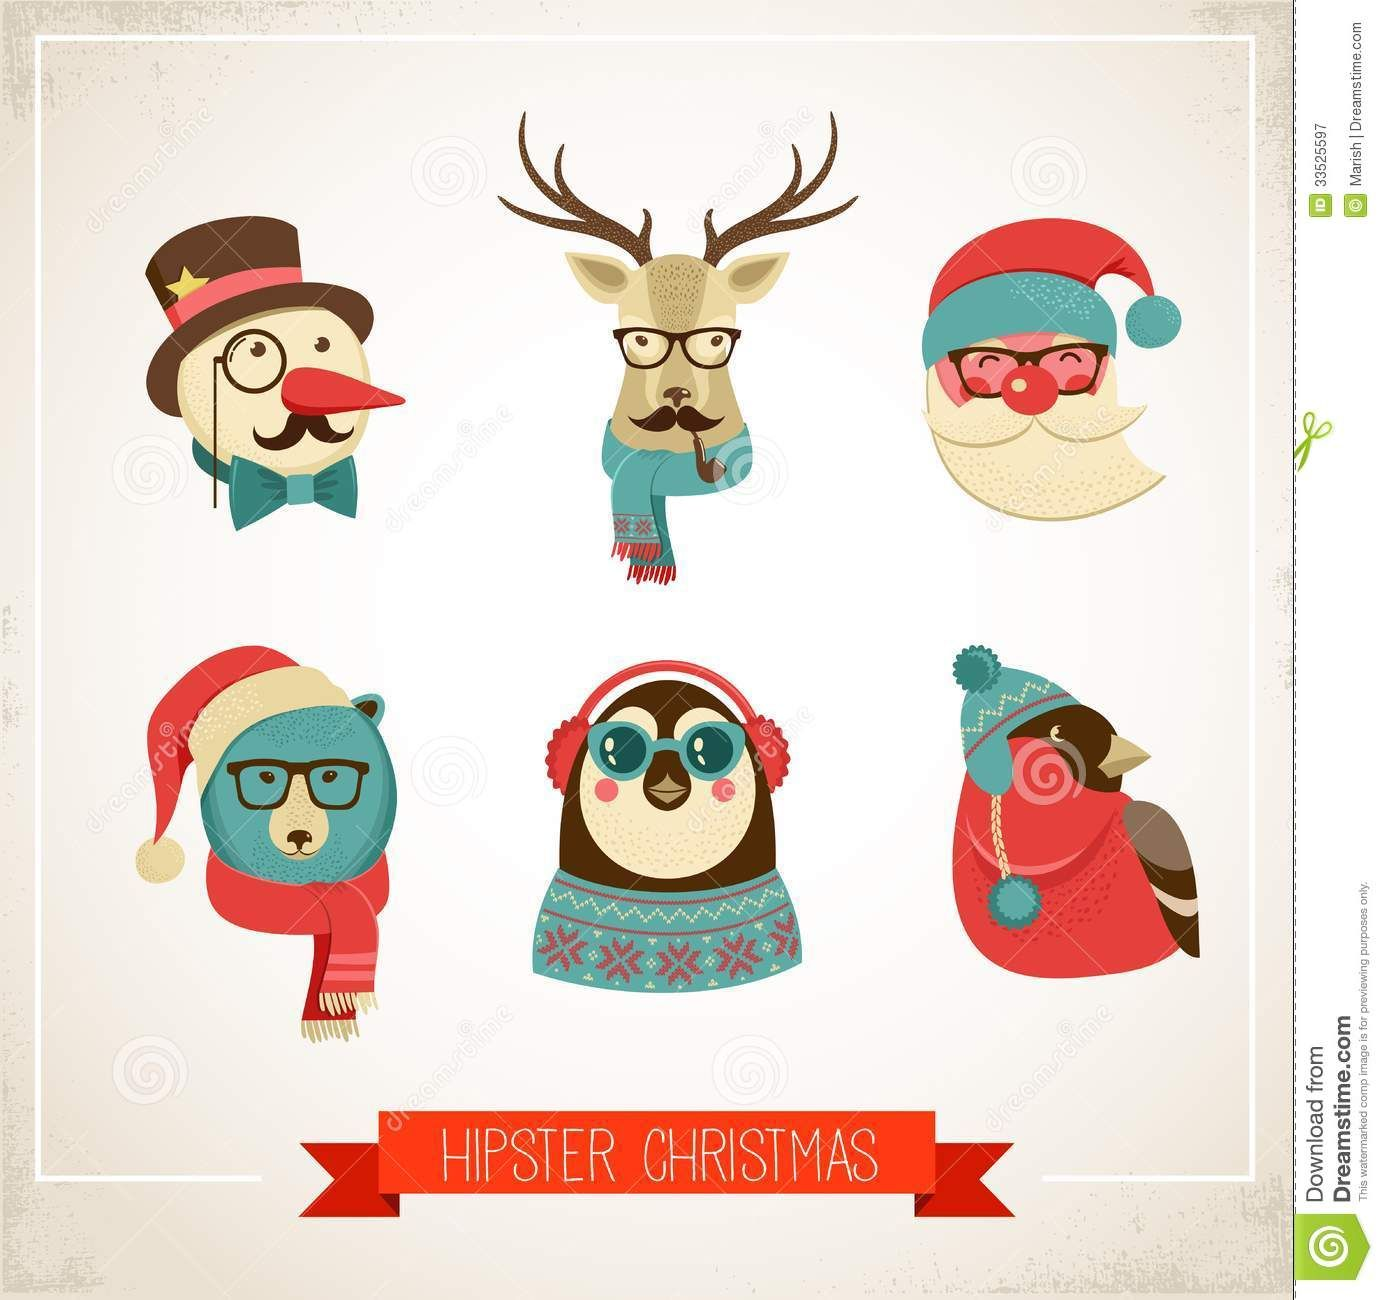 Free christmas vectors download christmas vector images and art free - Christmas Background With Hipster Animals Royalty Free Stock